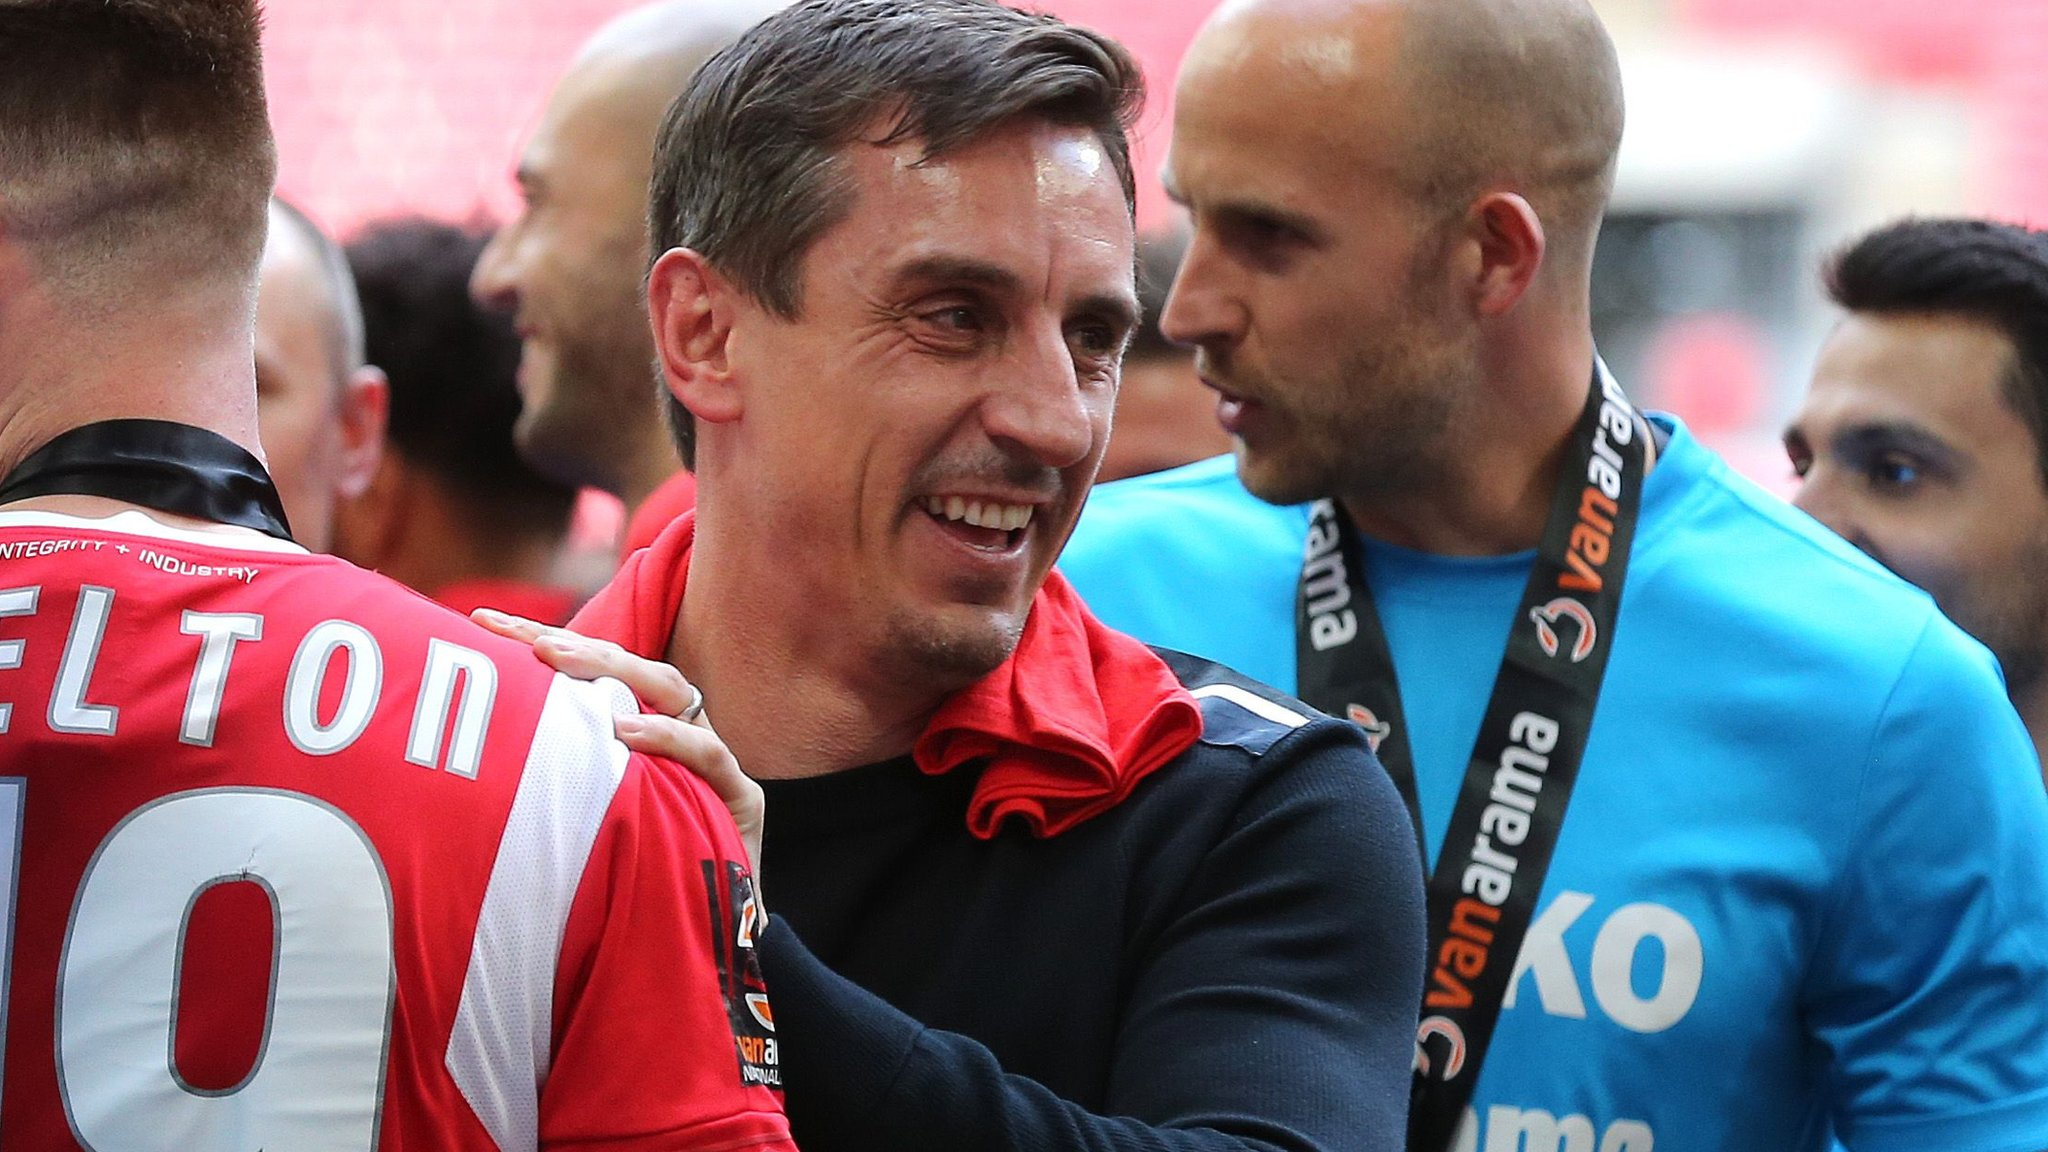 League Two fixtures 2019-20: Salford host Stevenage, Orient at home to Cheltenham on opening day